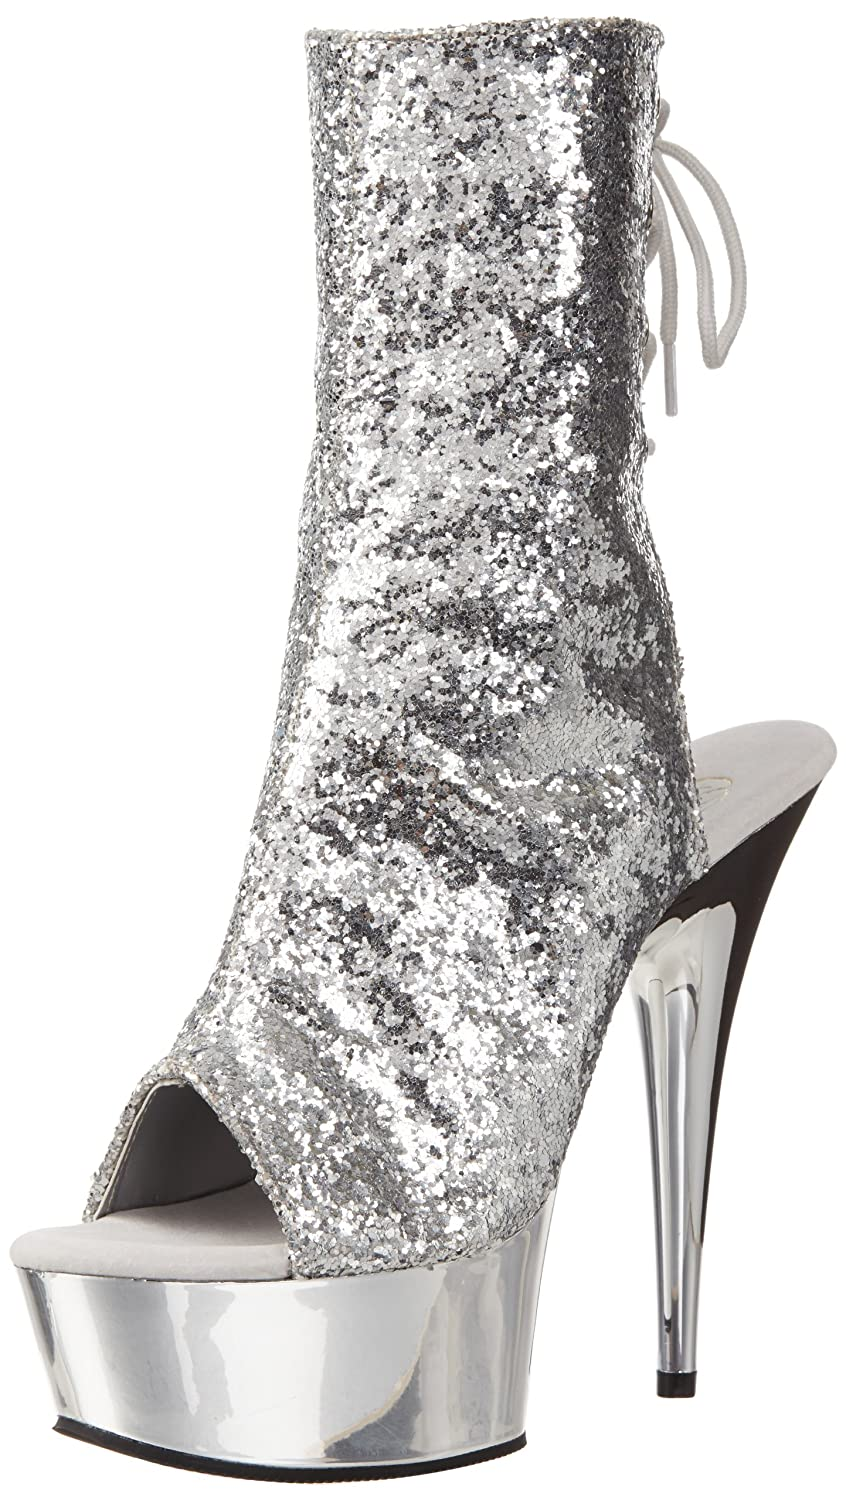 Pleaser Women's Delight-1018 Boot B00ADIR6Y2 14 B(M) US|Silver Glitter/Silver Chrome